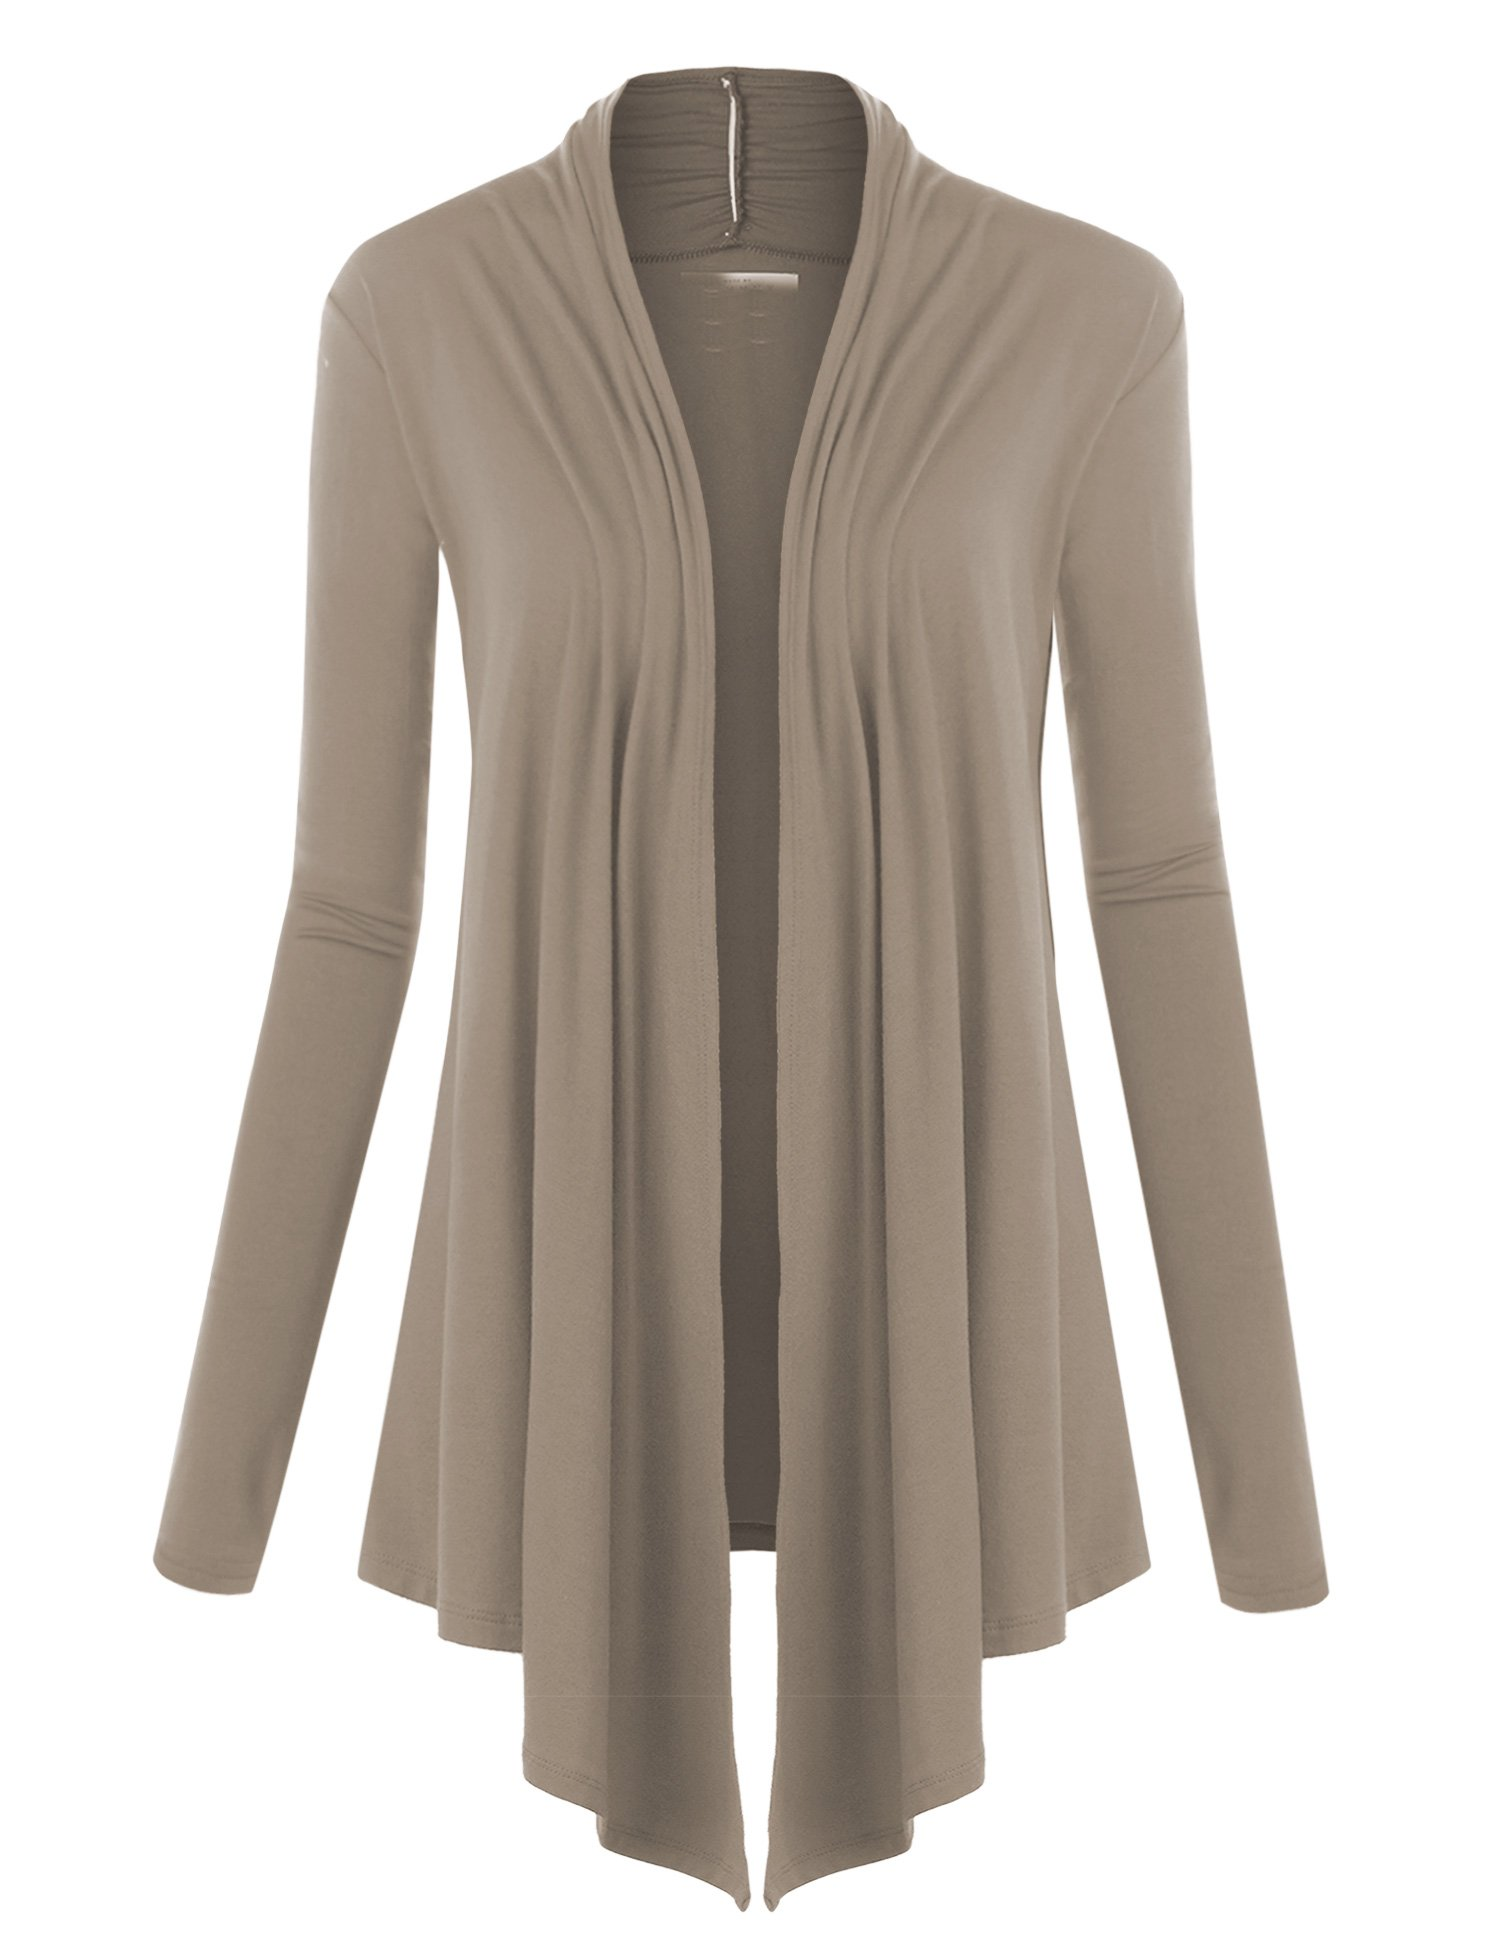 WSK850 Womens Draped Open- Front Cardigan XXXL Taupe